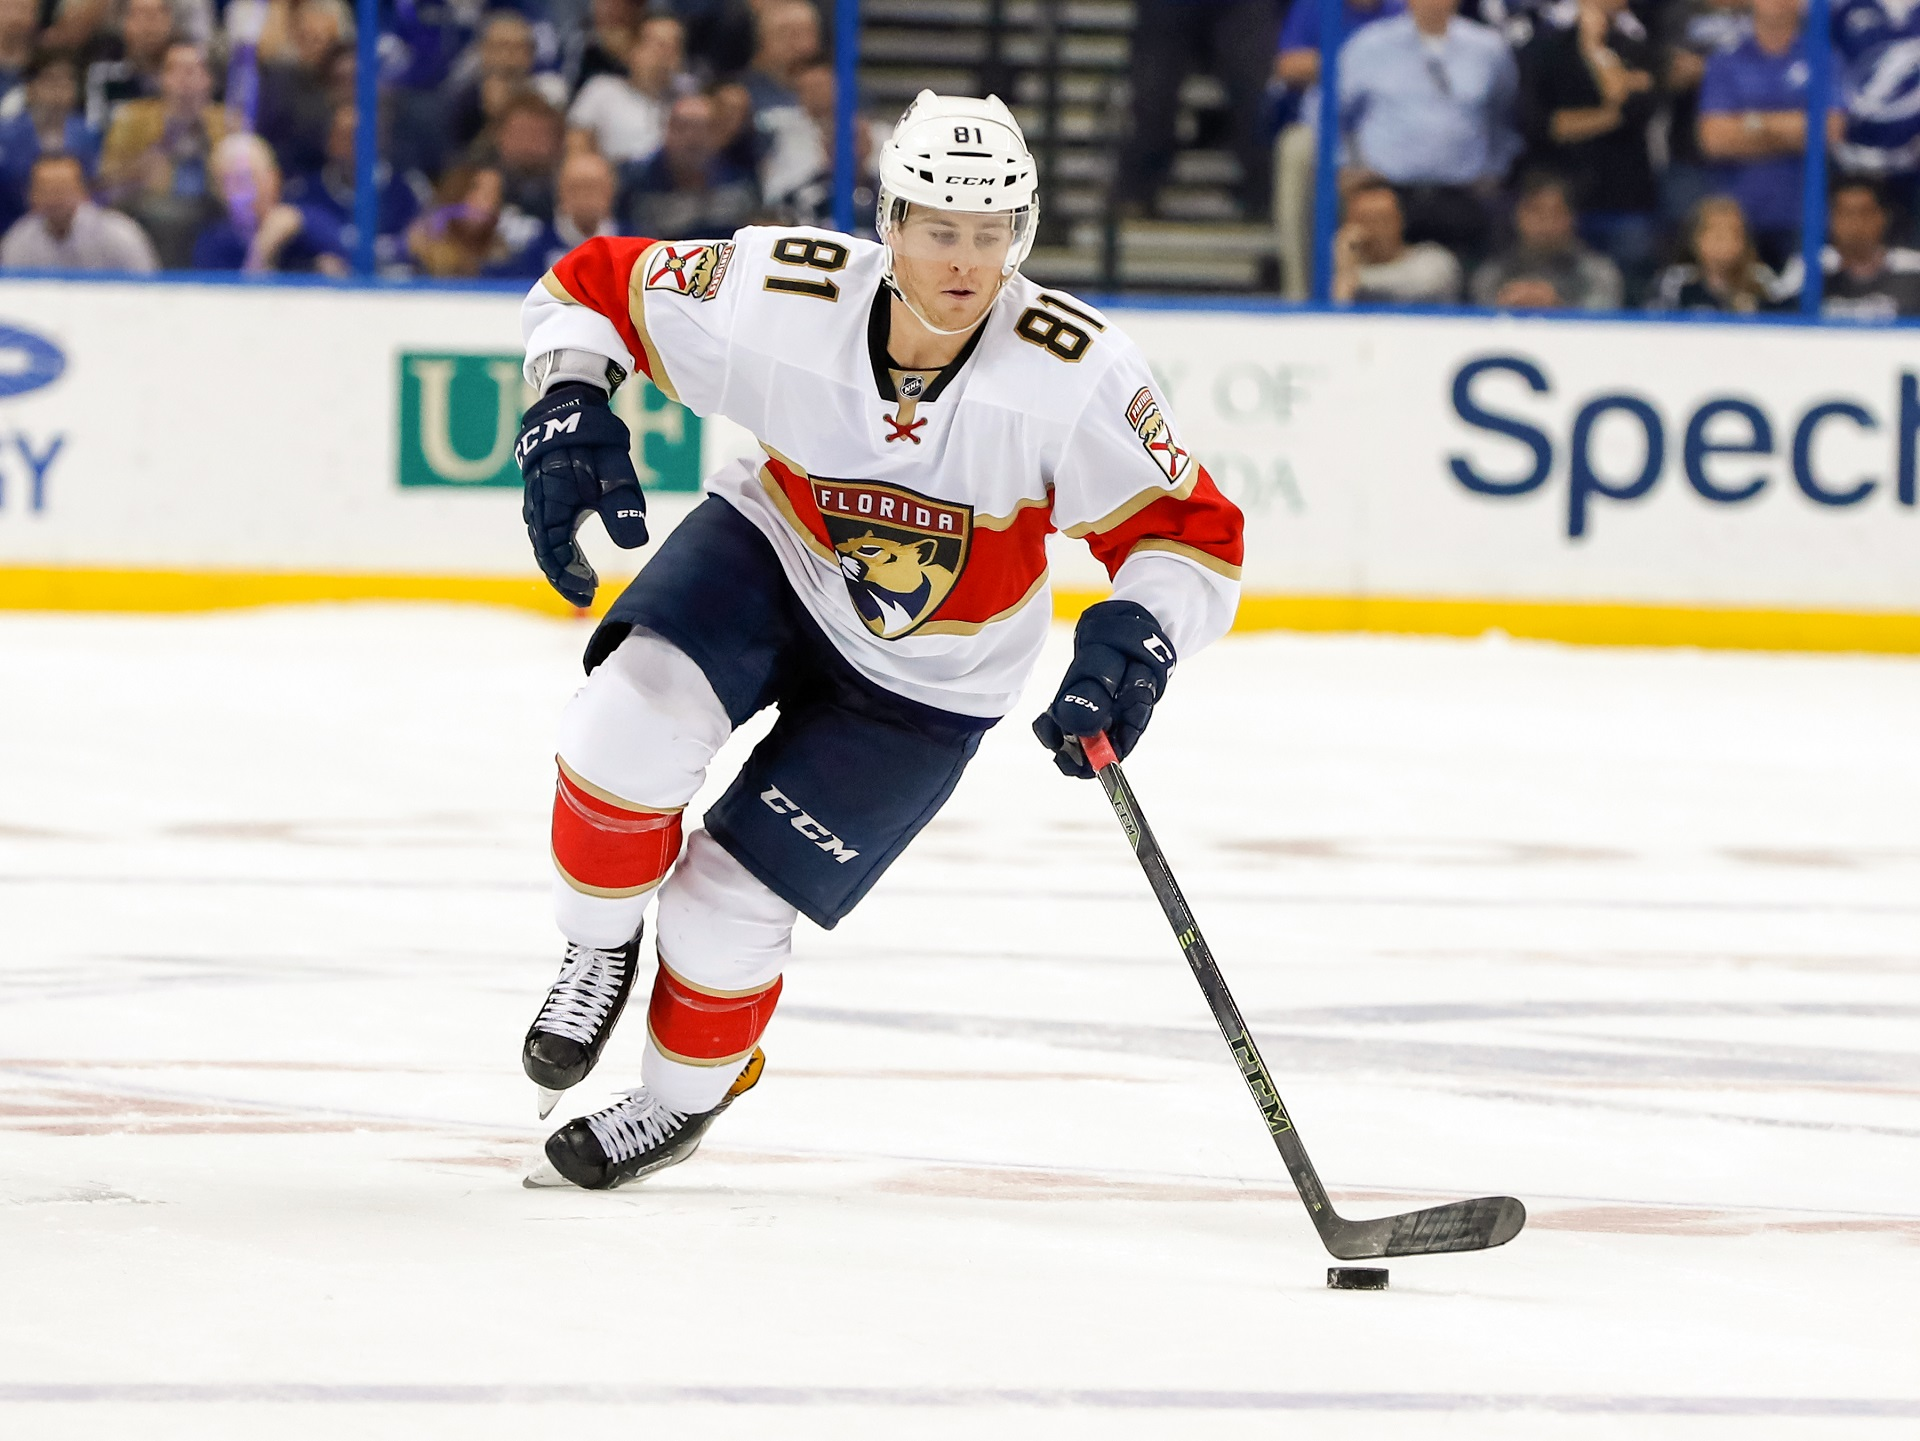 Jonthan-marchessault-061917-getty-ftr-jpeg_v31lo92cmcsm1fexivjh27a90